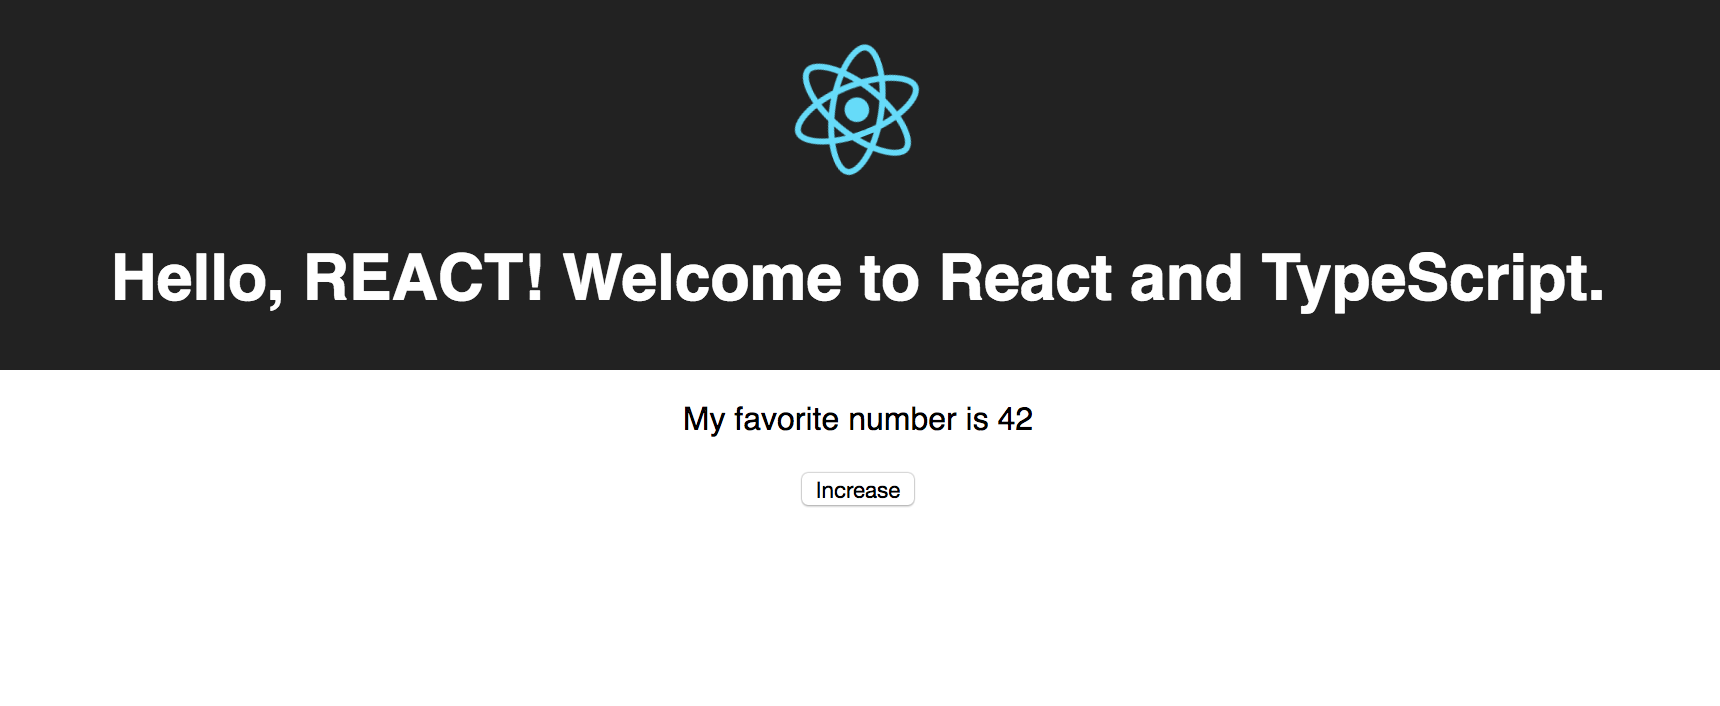 TypeScript and React using create-react-app: A step-by-step